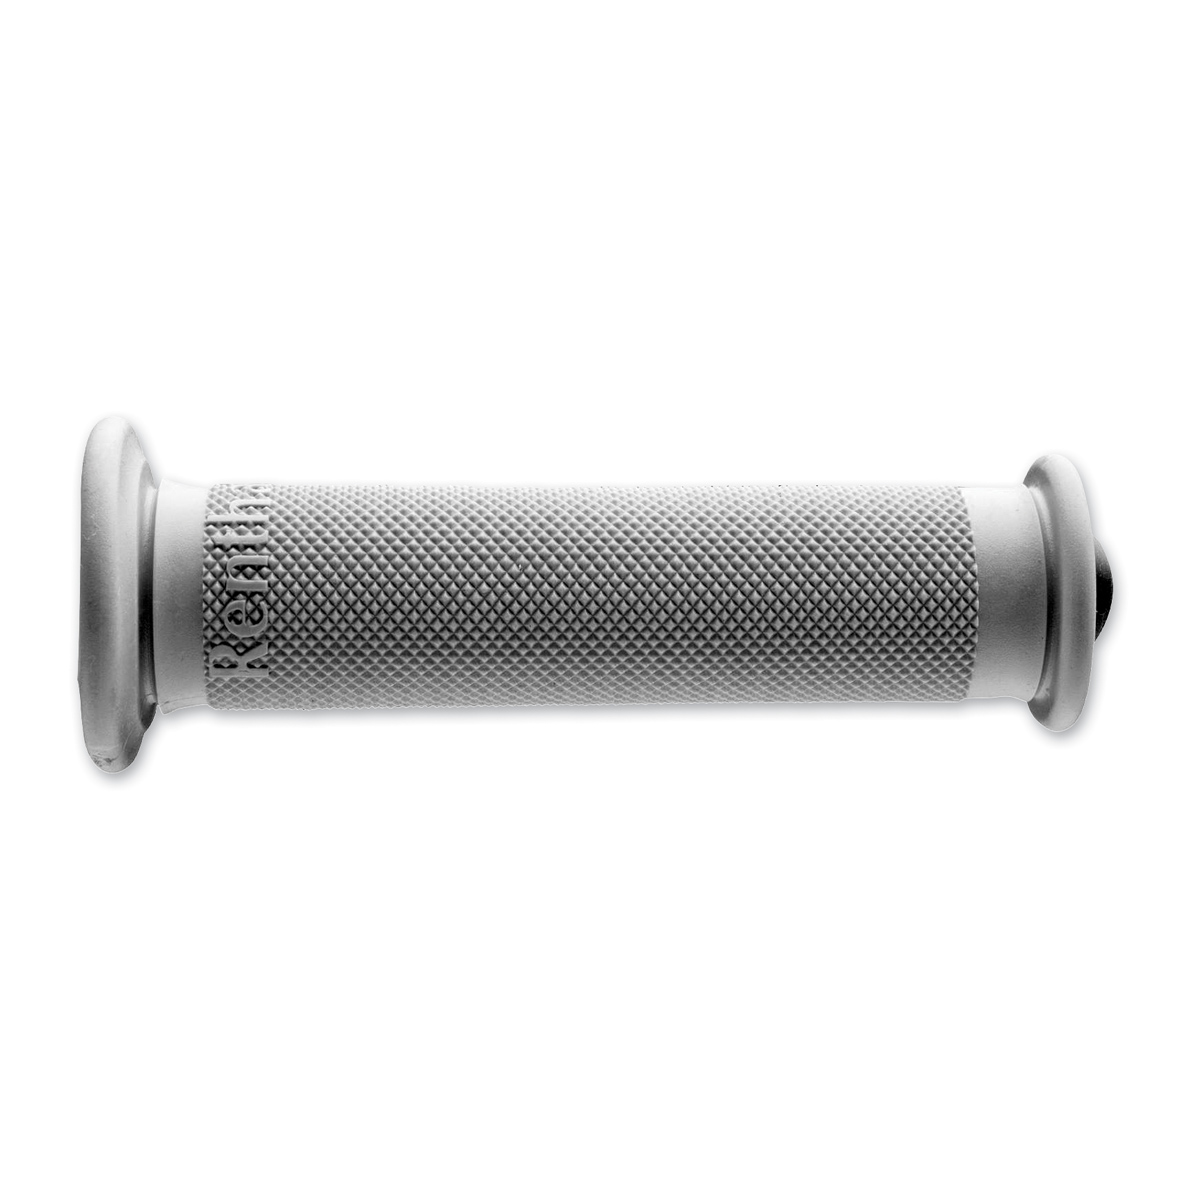 Renthal Soft Single-Compound Road Race Full Diamond Grips